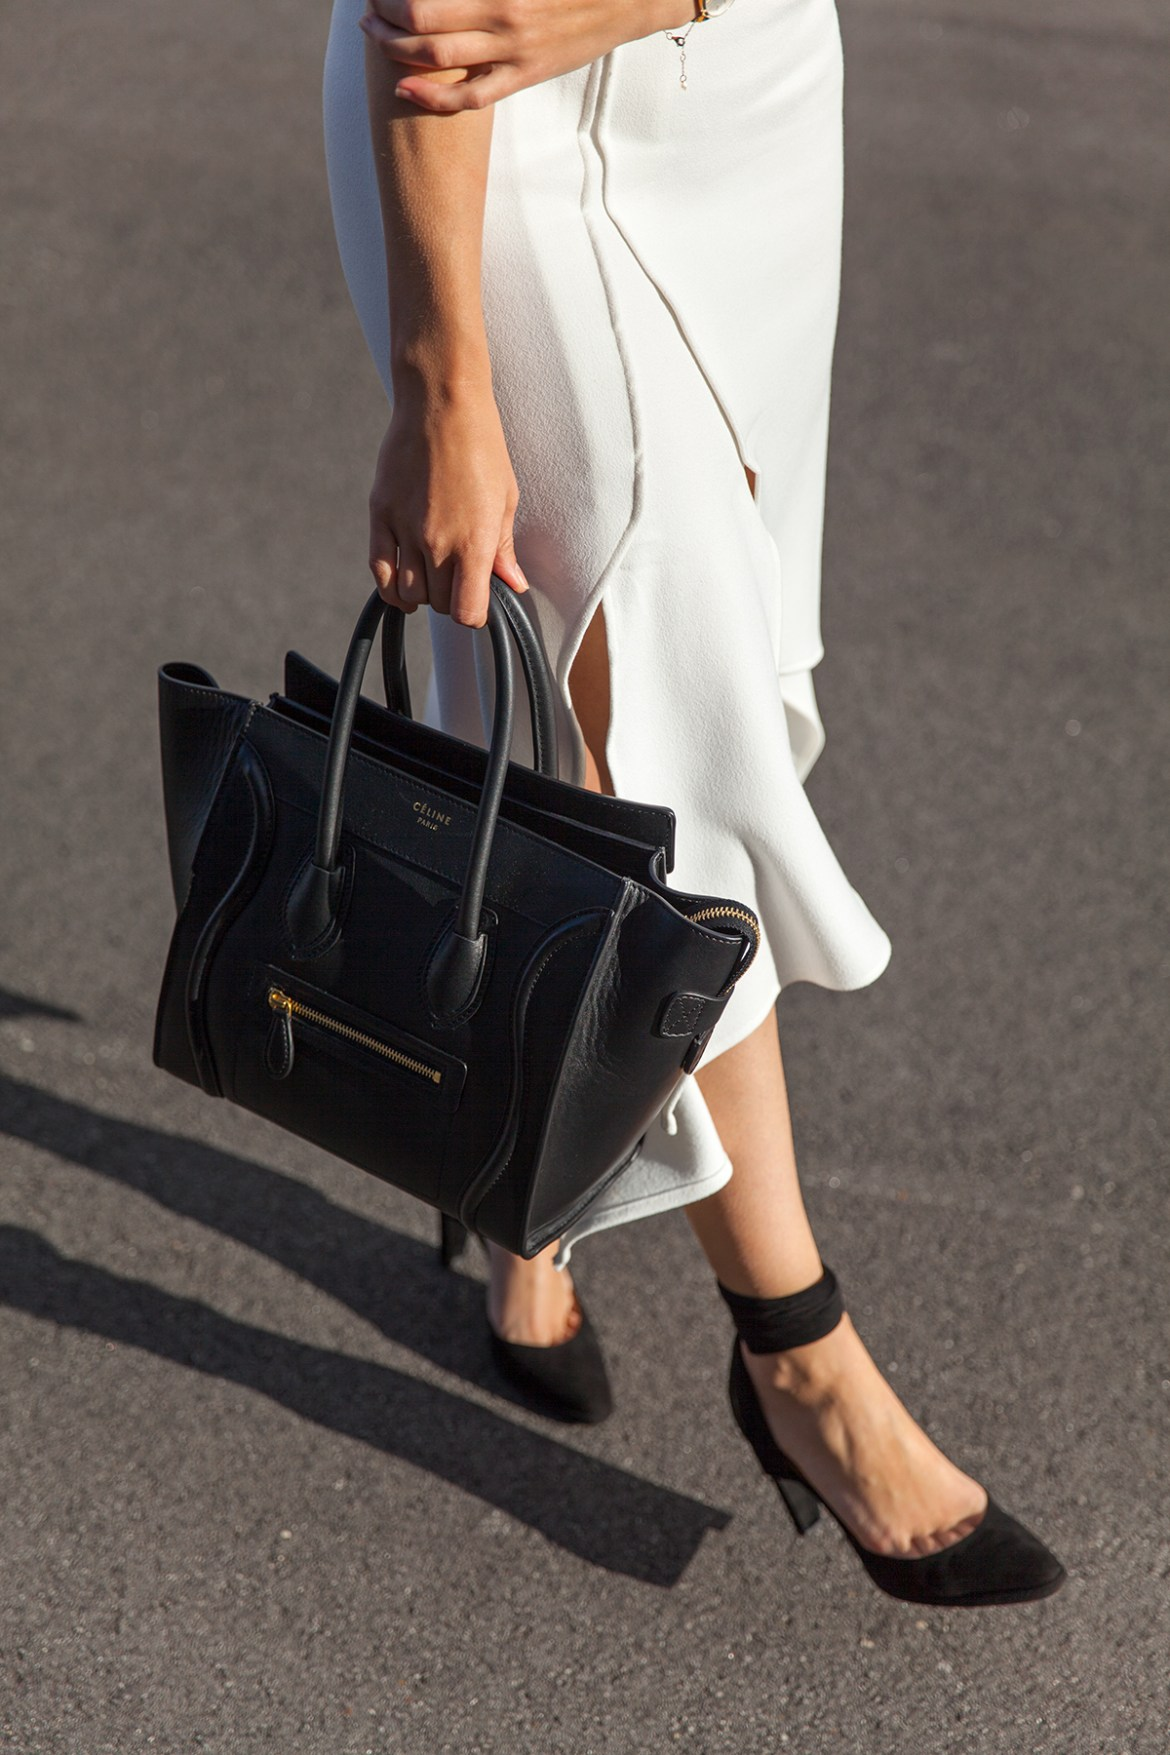 midi skirts, five reasons you need one, Hermes suede heels, Celine tote, Hello Parry midi skirt worn by Inspiring Wit fashion blogger Jenelle Witty